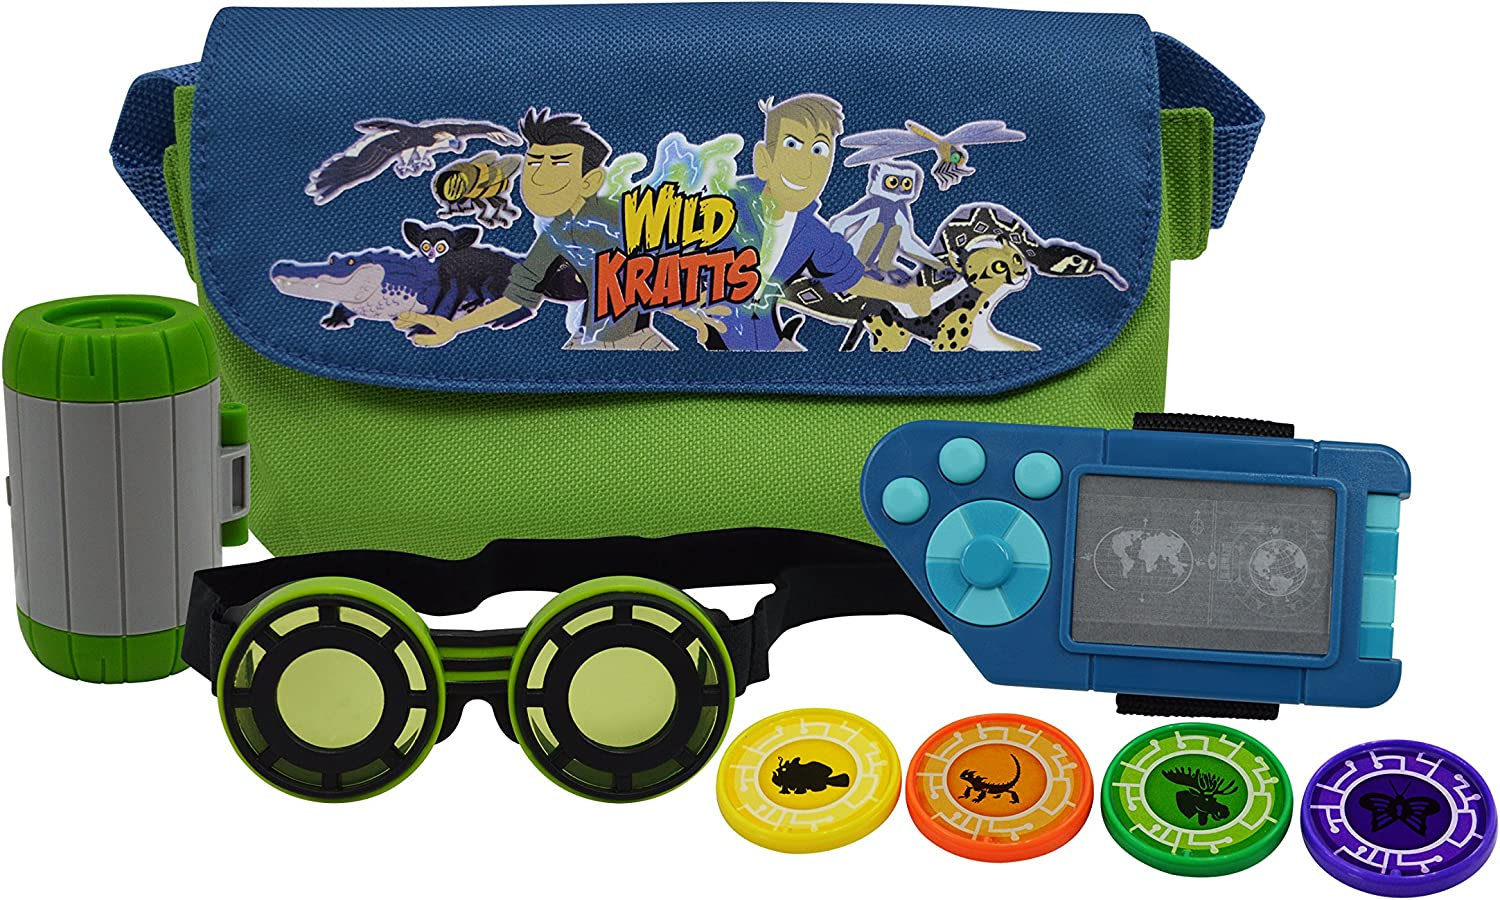 Wild Kratts Adventure Set with Goggles and Power Discs